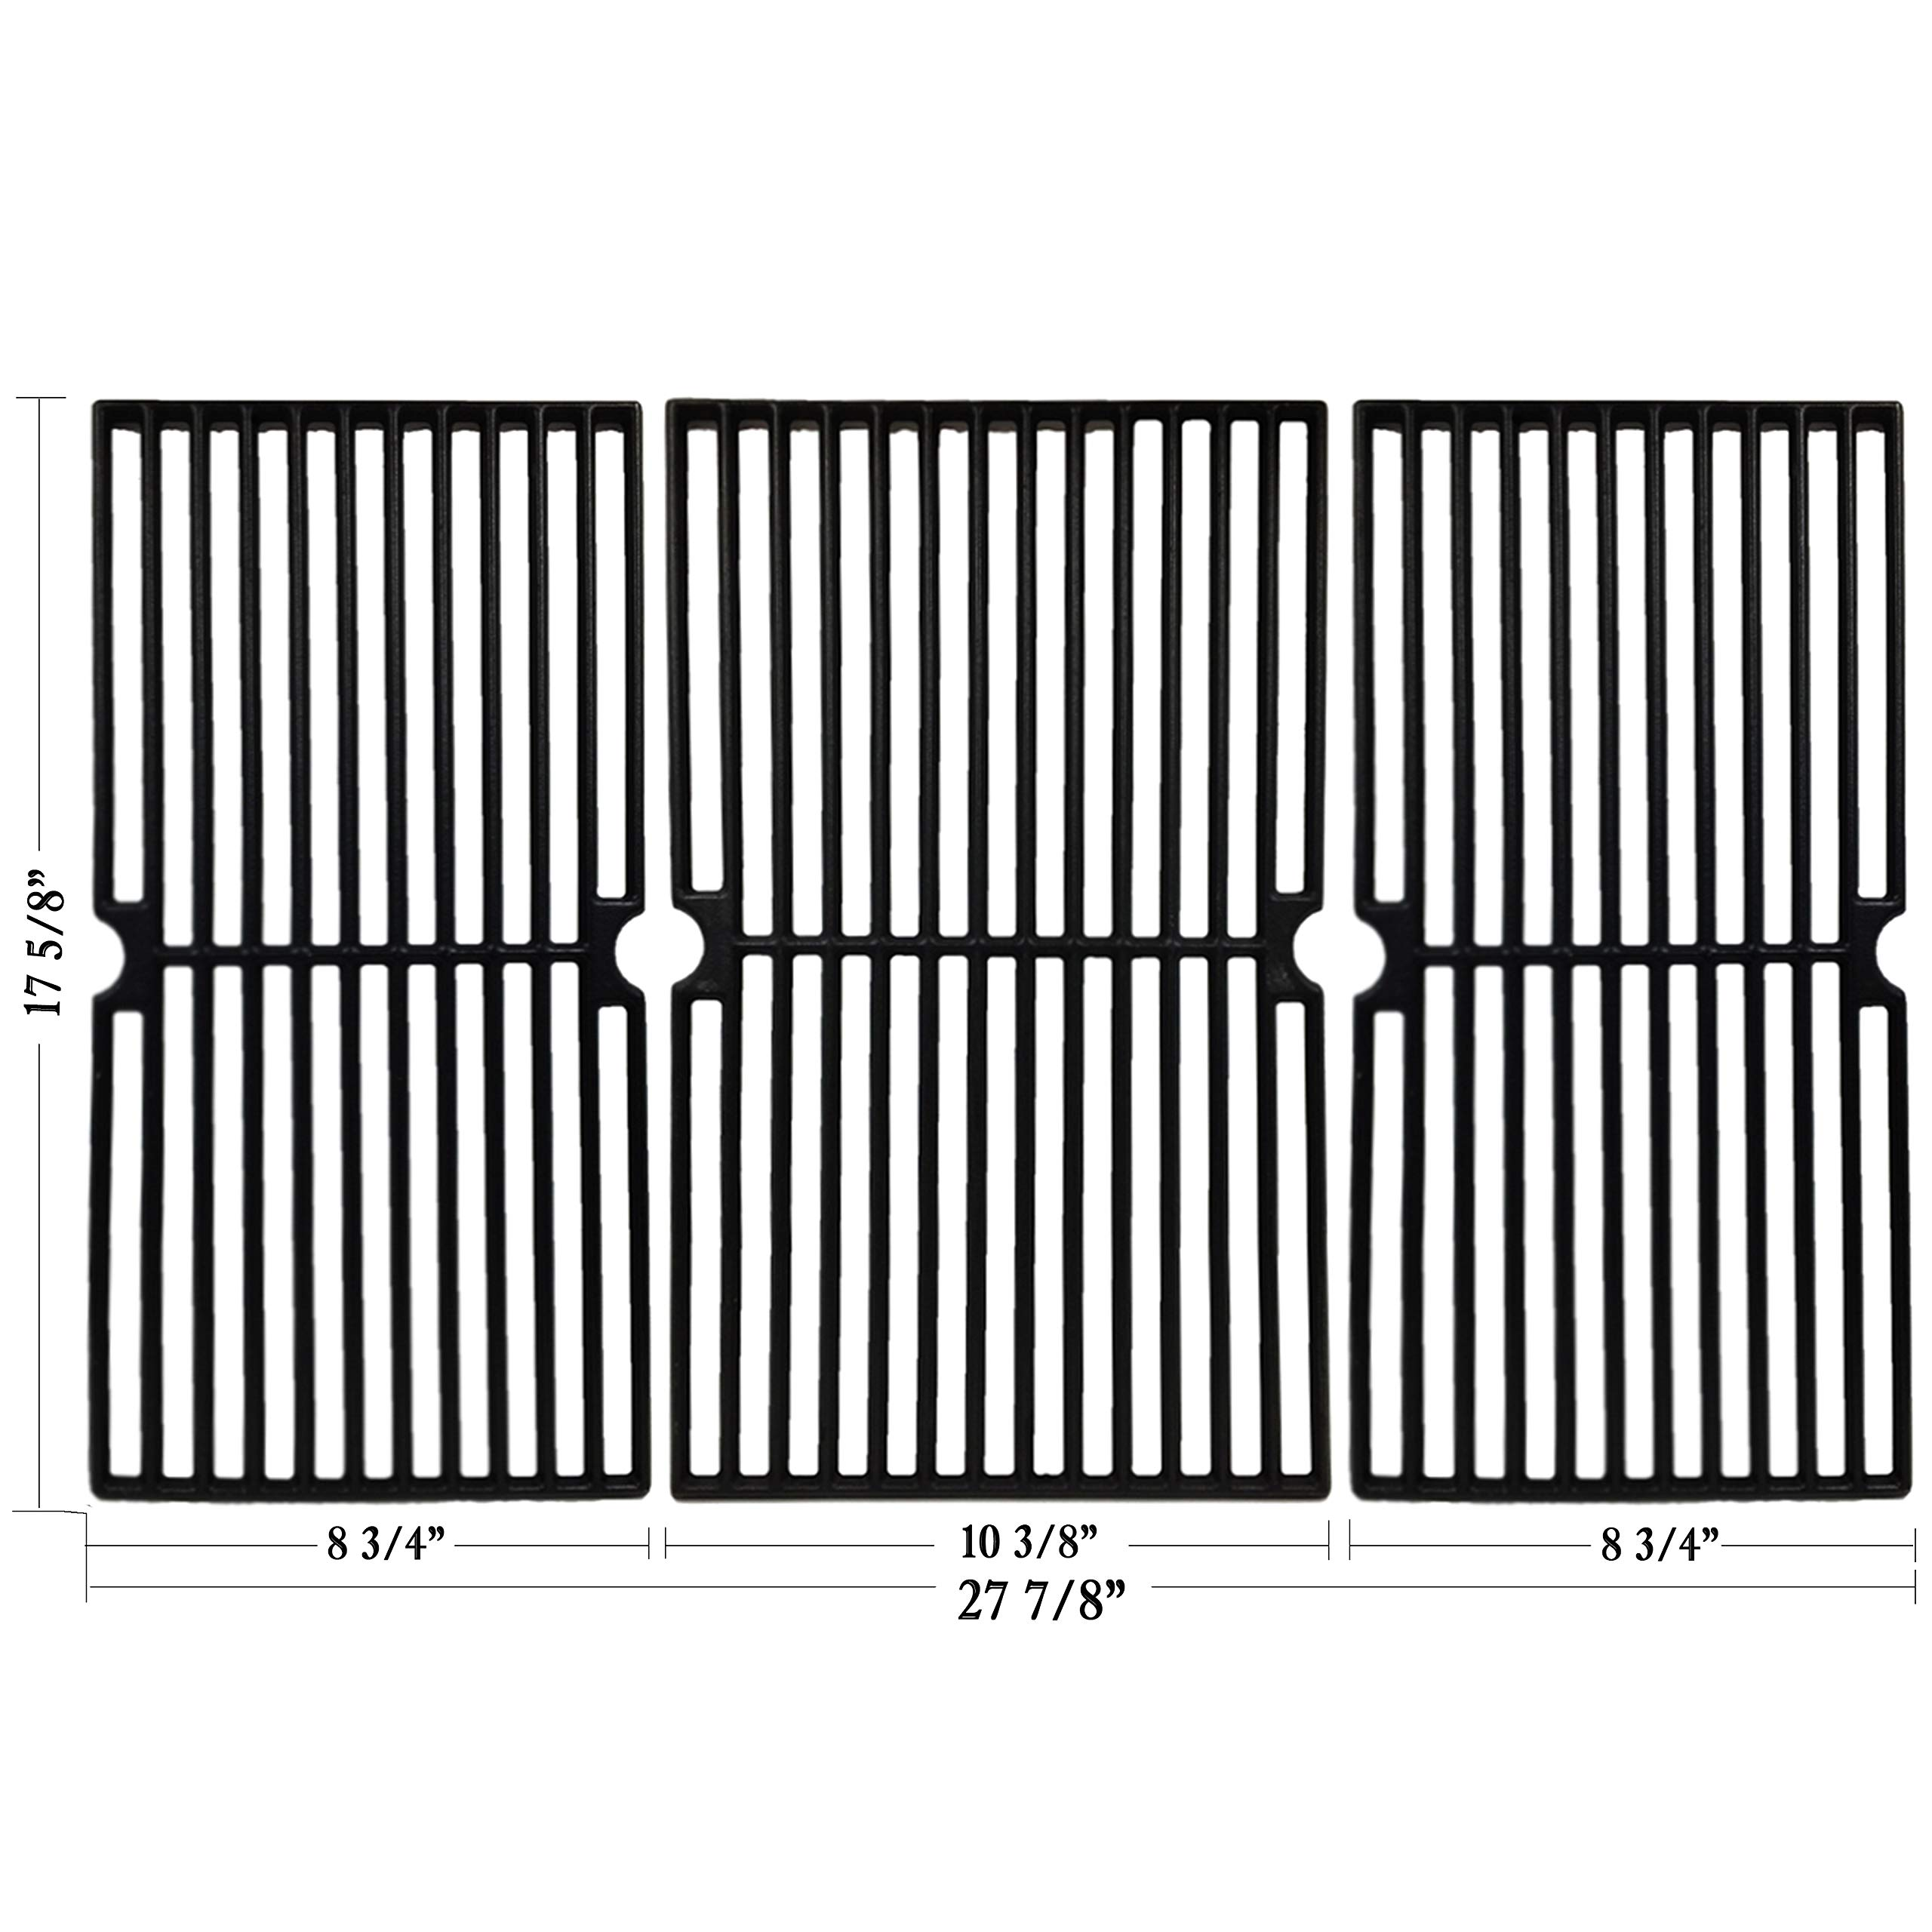 Hisencn Cast Iron Cooking Grid Grate Replacement for Brinkmann Pro Series 8300, 810-1415-F, 810-7231-W, 810-8300-W, 810-9400-0, Grill King 810-9325-0 Gas Grill Models, Set of 3 Grill Cooking Grids